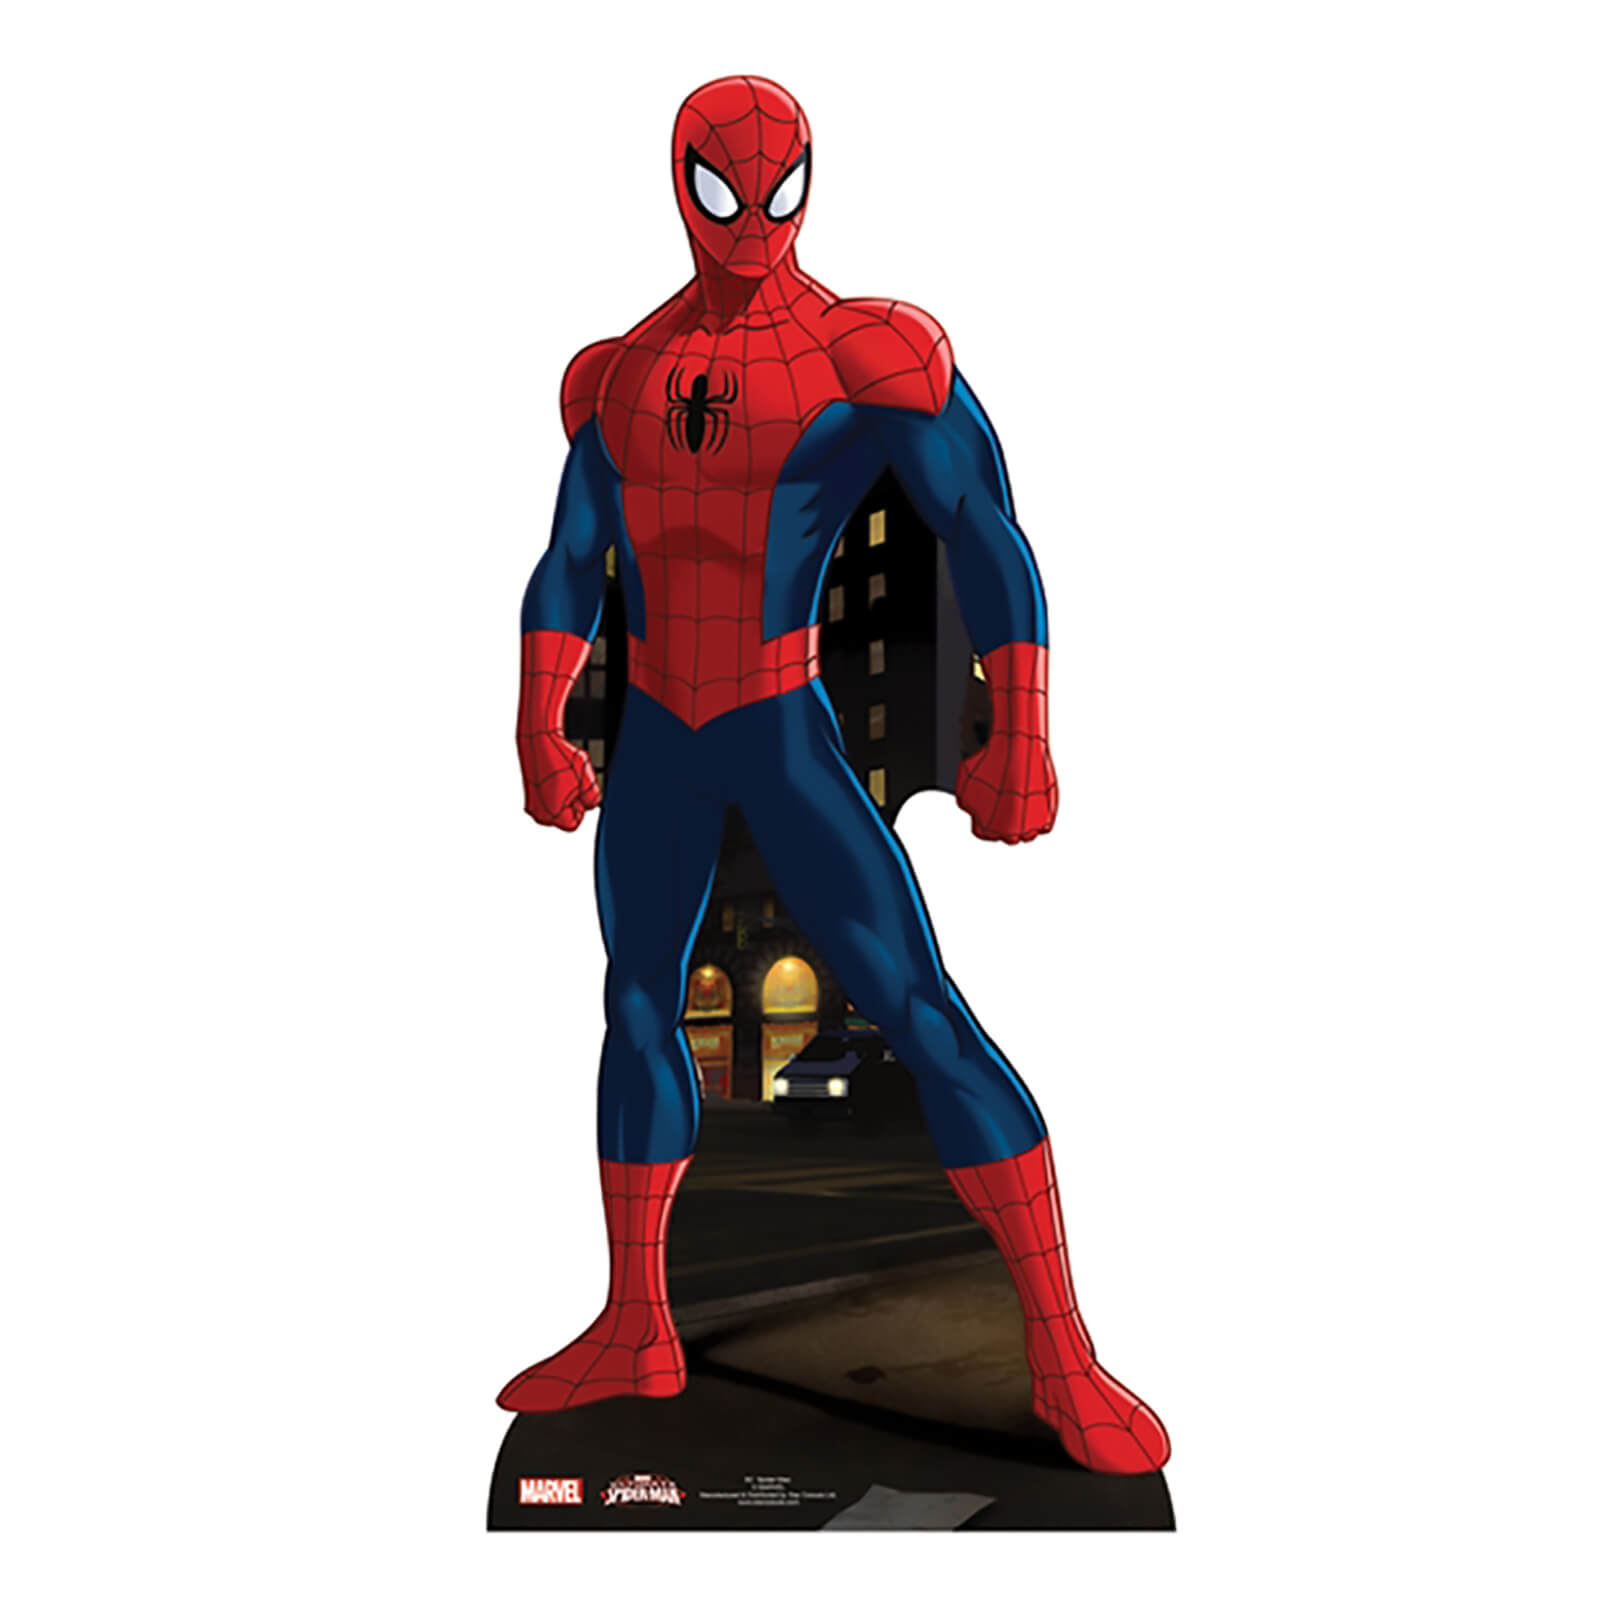 Image of Marvel - Spider-Man Mini Carboard Cut Out